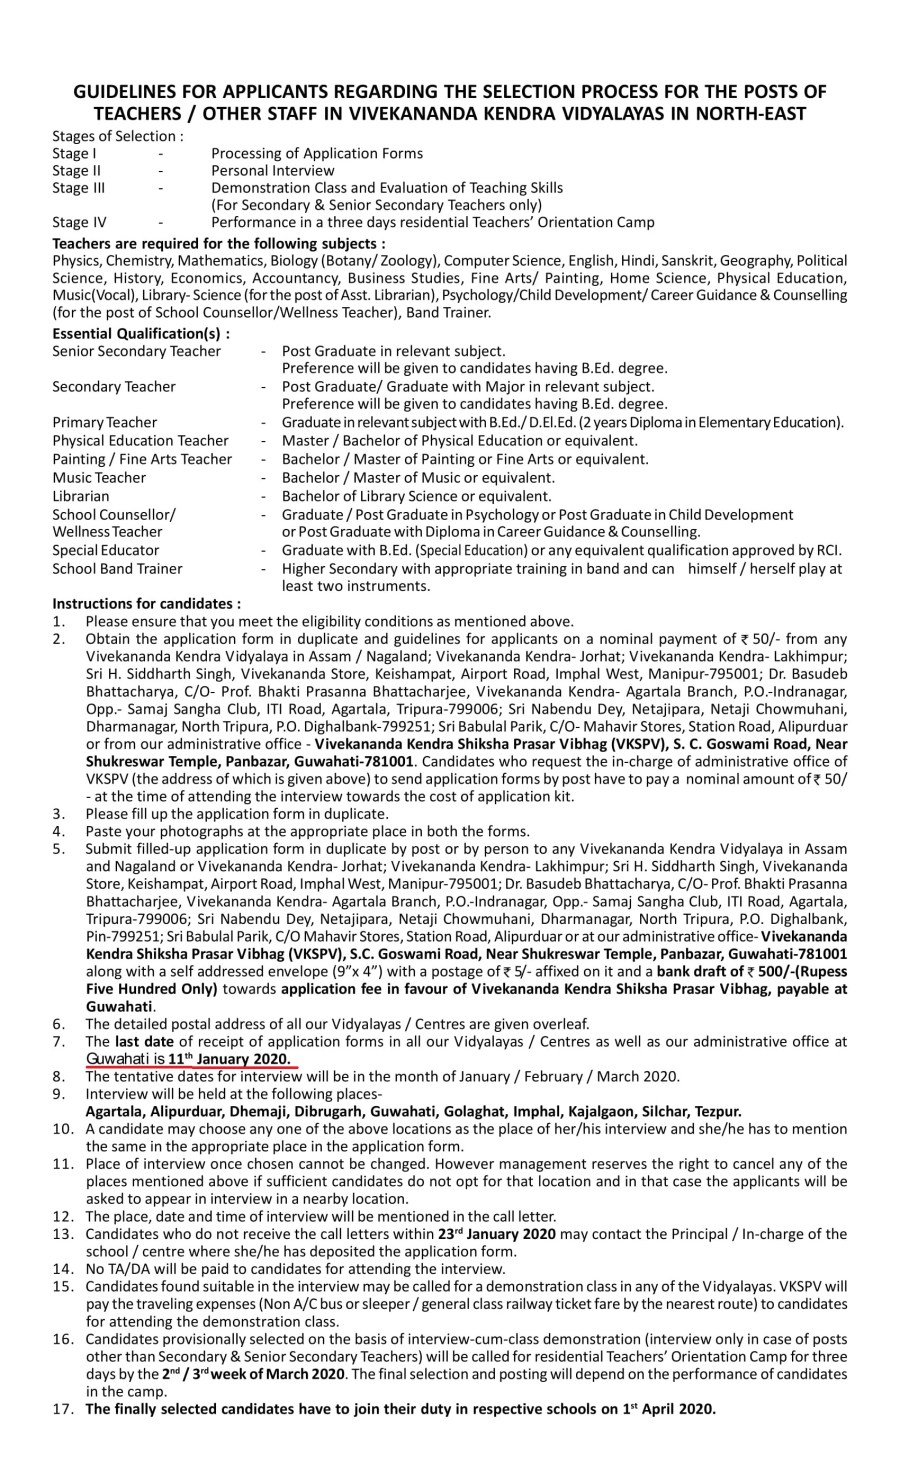 441024453-Application-Forms-and-Guidelines-for-Applicants-VKSPV-Teachers-Interview-2020-21-5.jpg